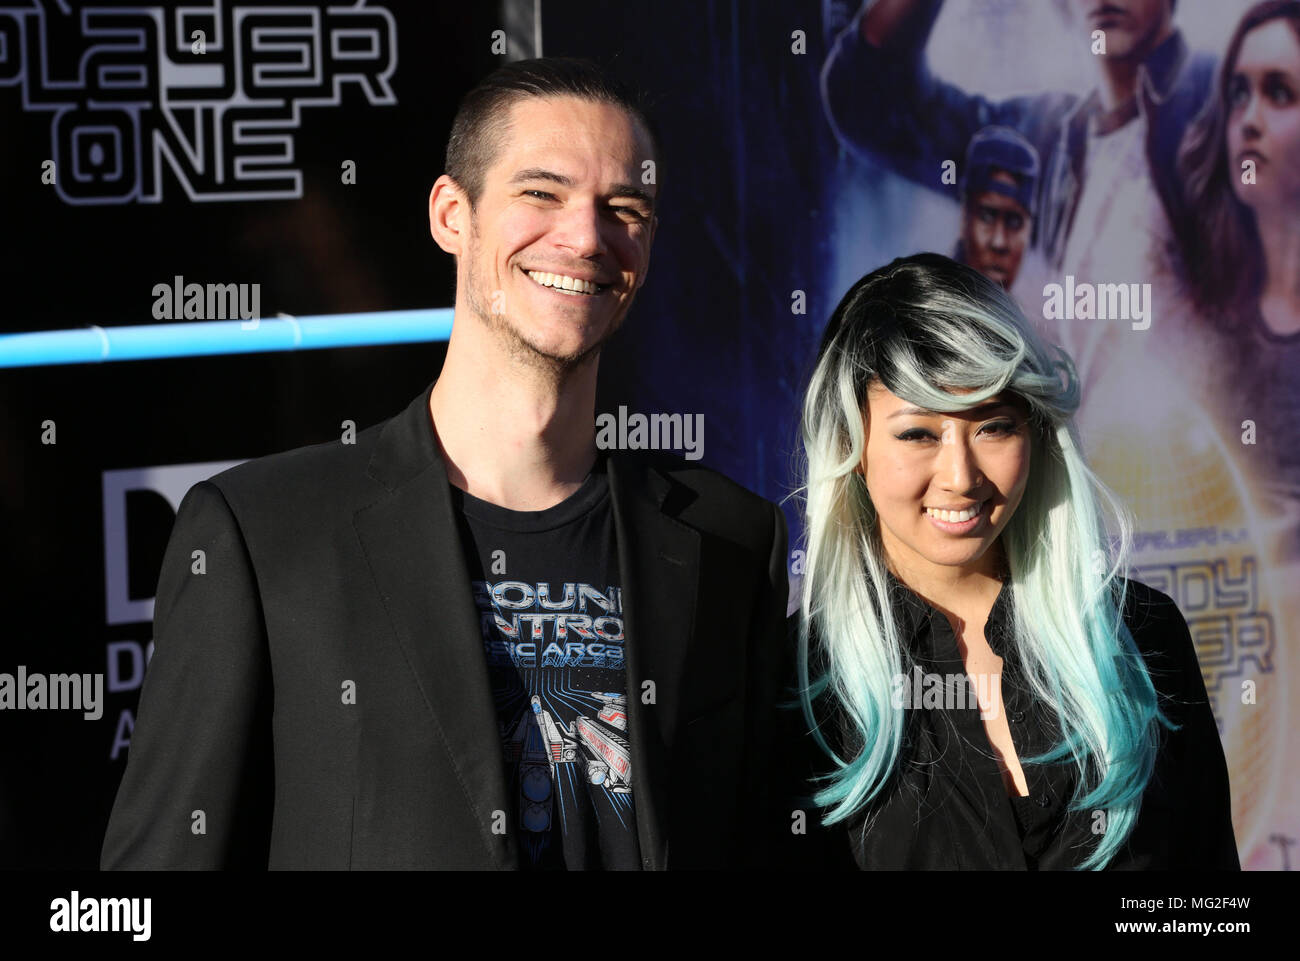 Celebrities Attend Ready Player One Film Premiere At Dolby Theatre